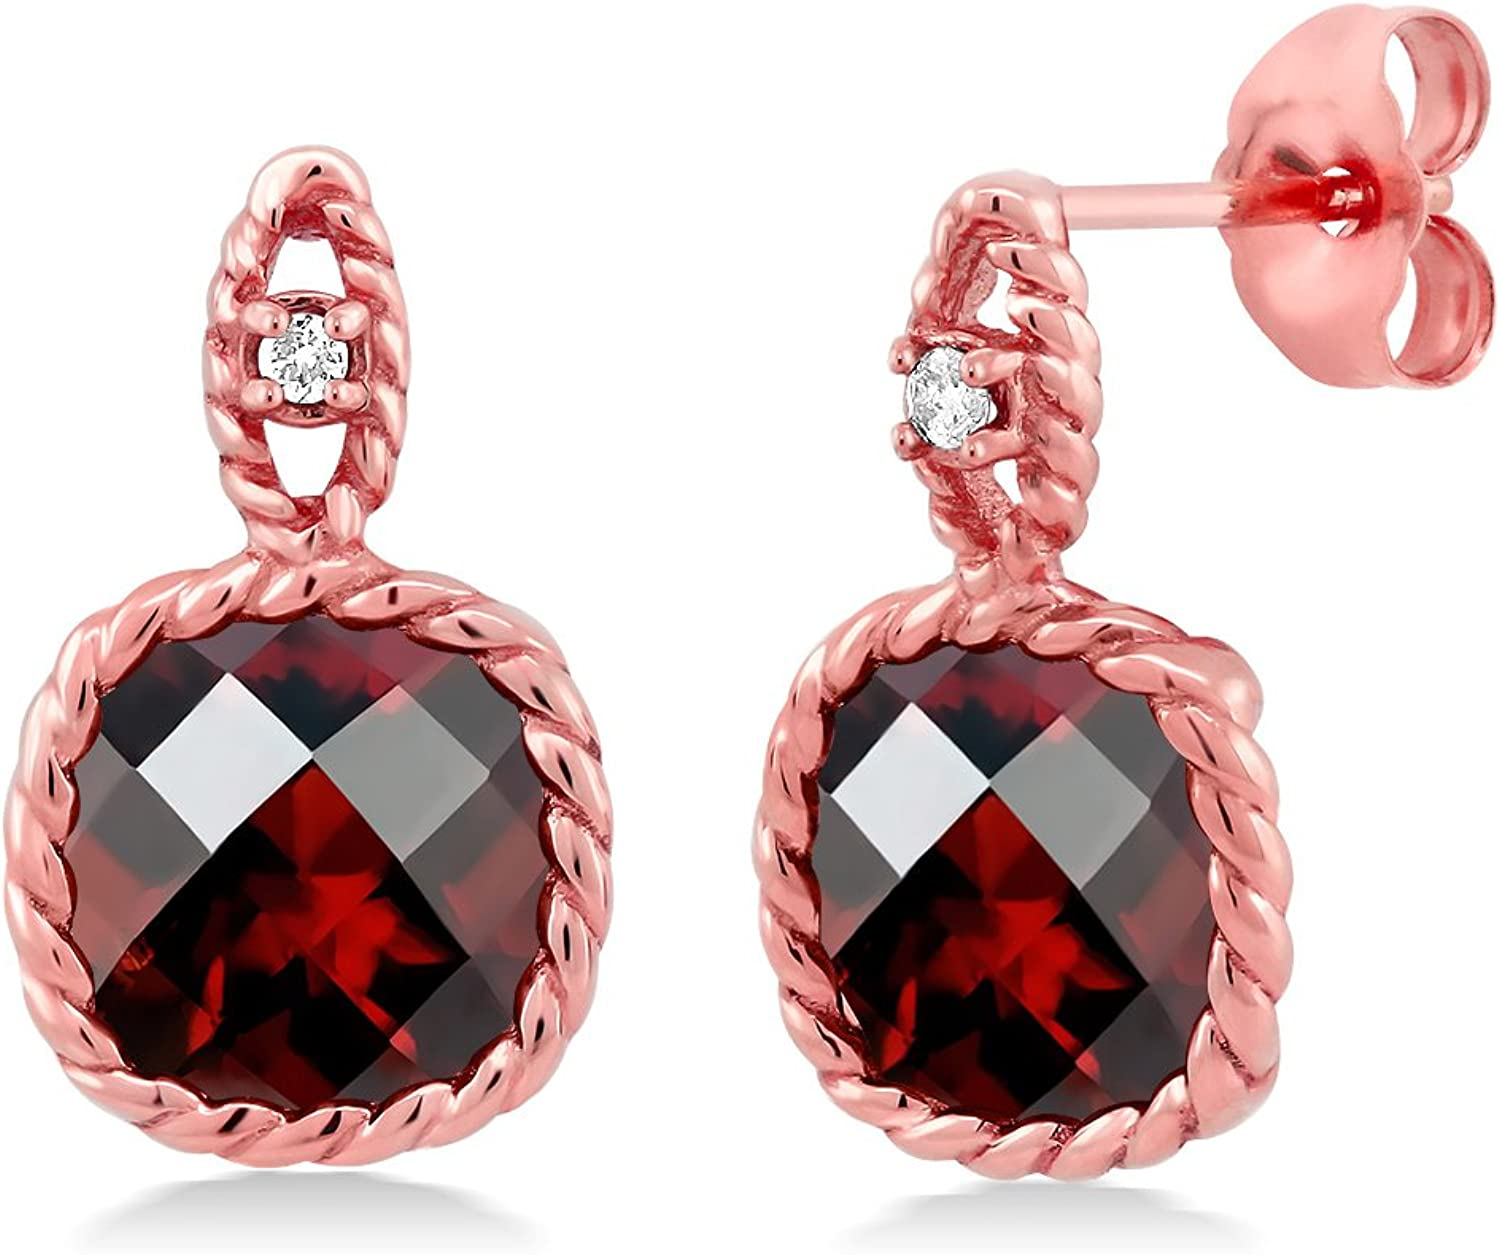 10K pink gold 4.80 Ct 8mm Cushion Checkerboard Garnet & Diamond Cable Earrings